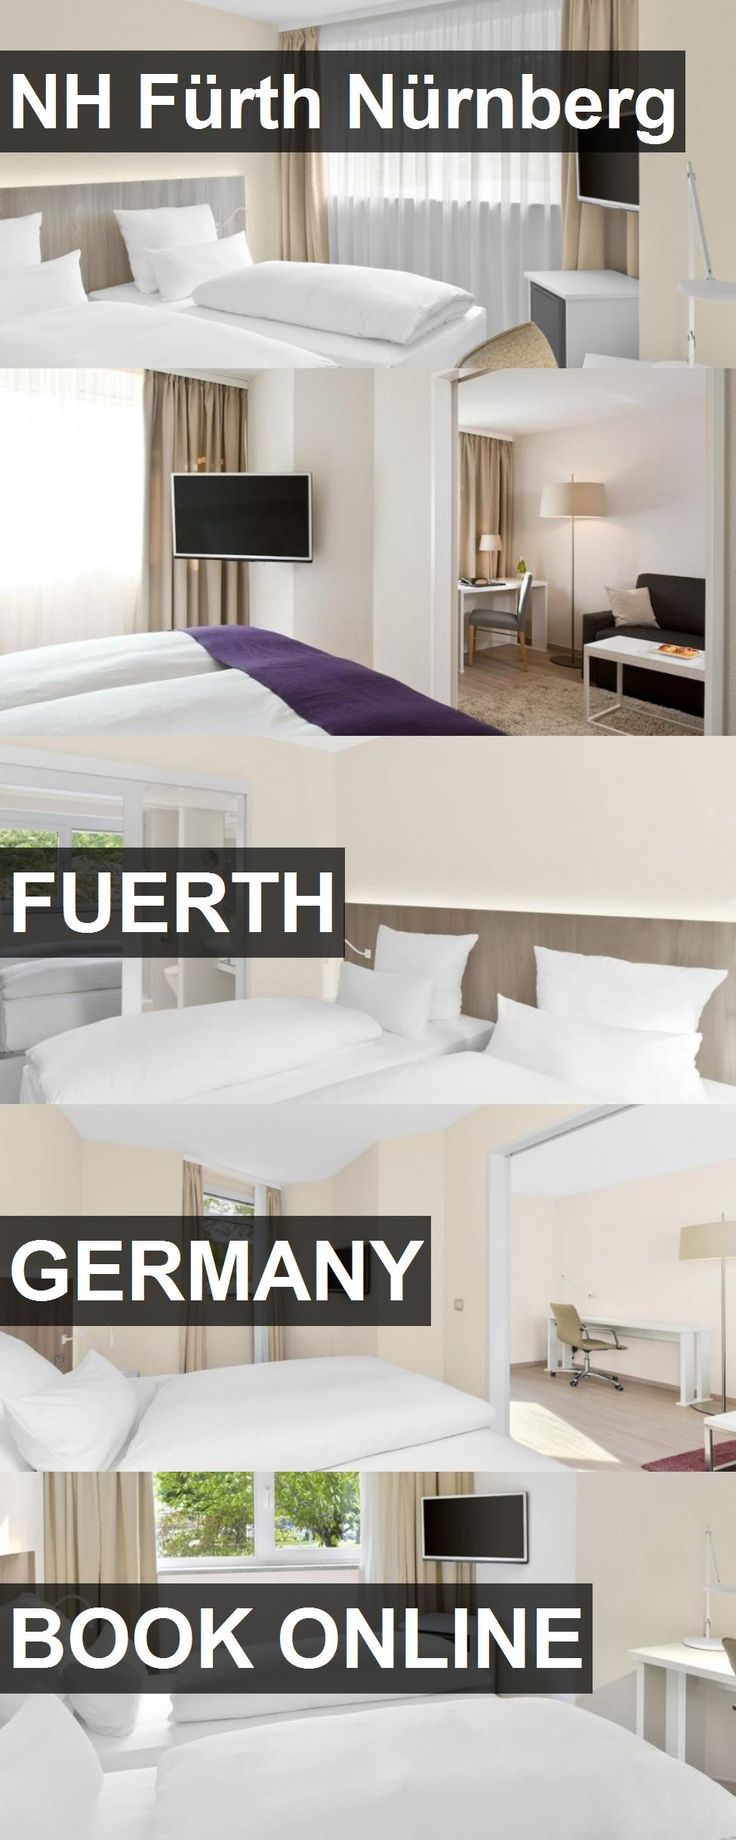 Hotel NH Fürth Nürnberg in Fuerth, Germany. For more information, photos, reviews and best prices please follow the link. #Germany #Fuerth #NHFürthNürnberg #hotel #travel #vacation